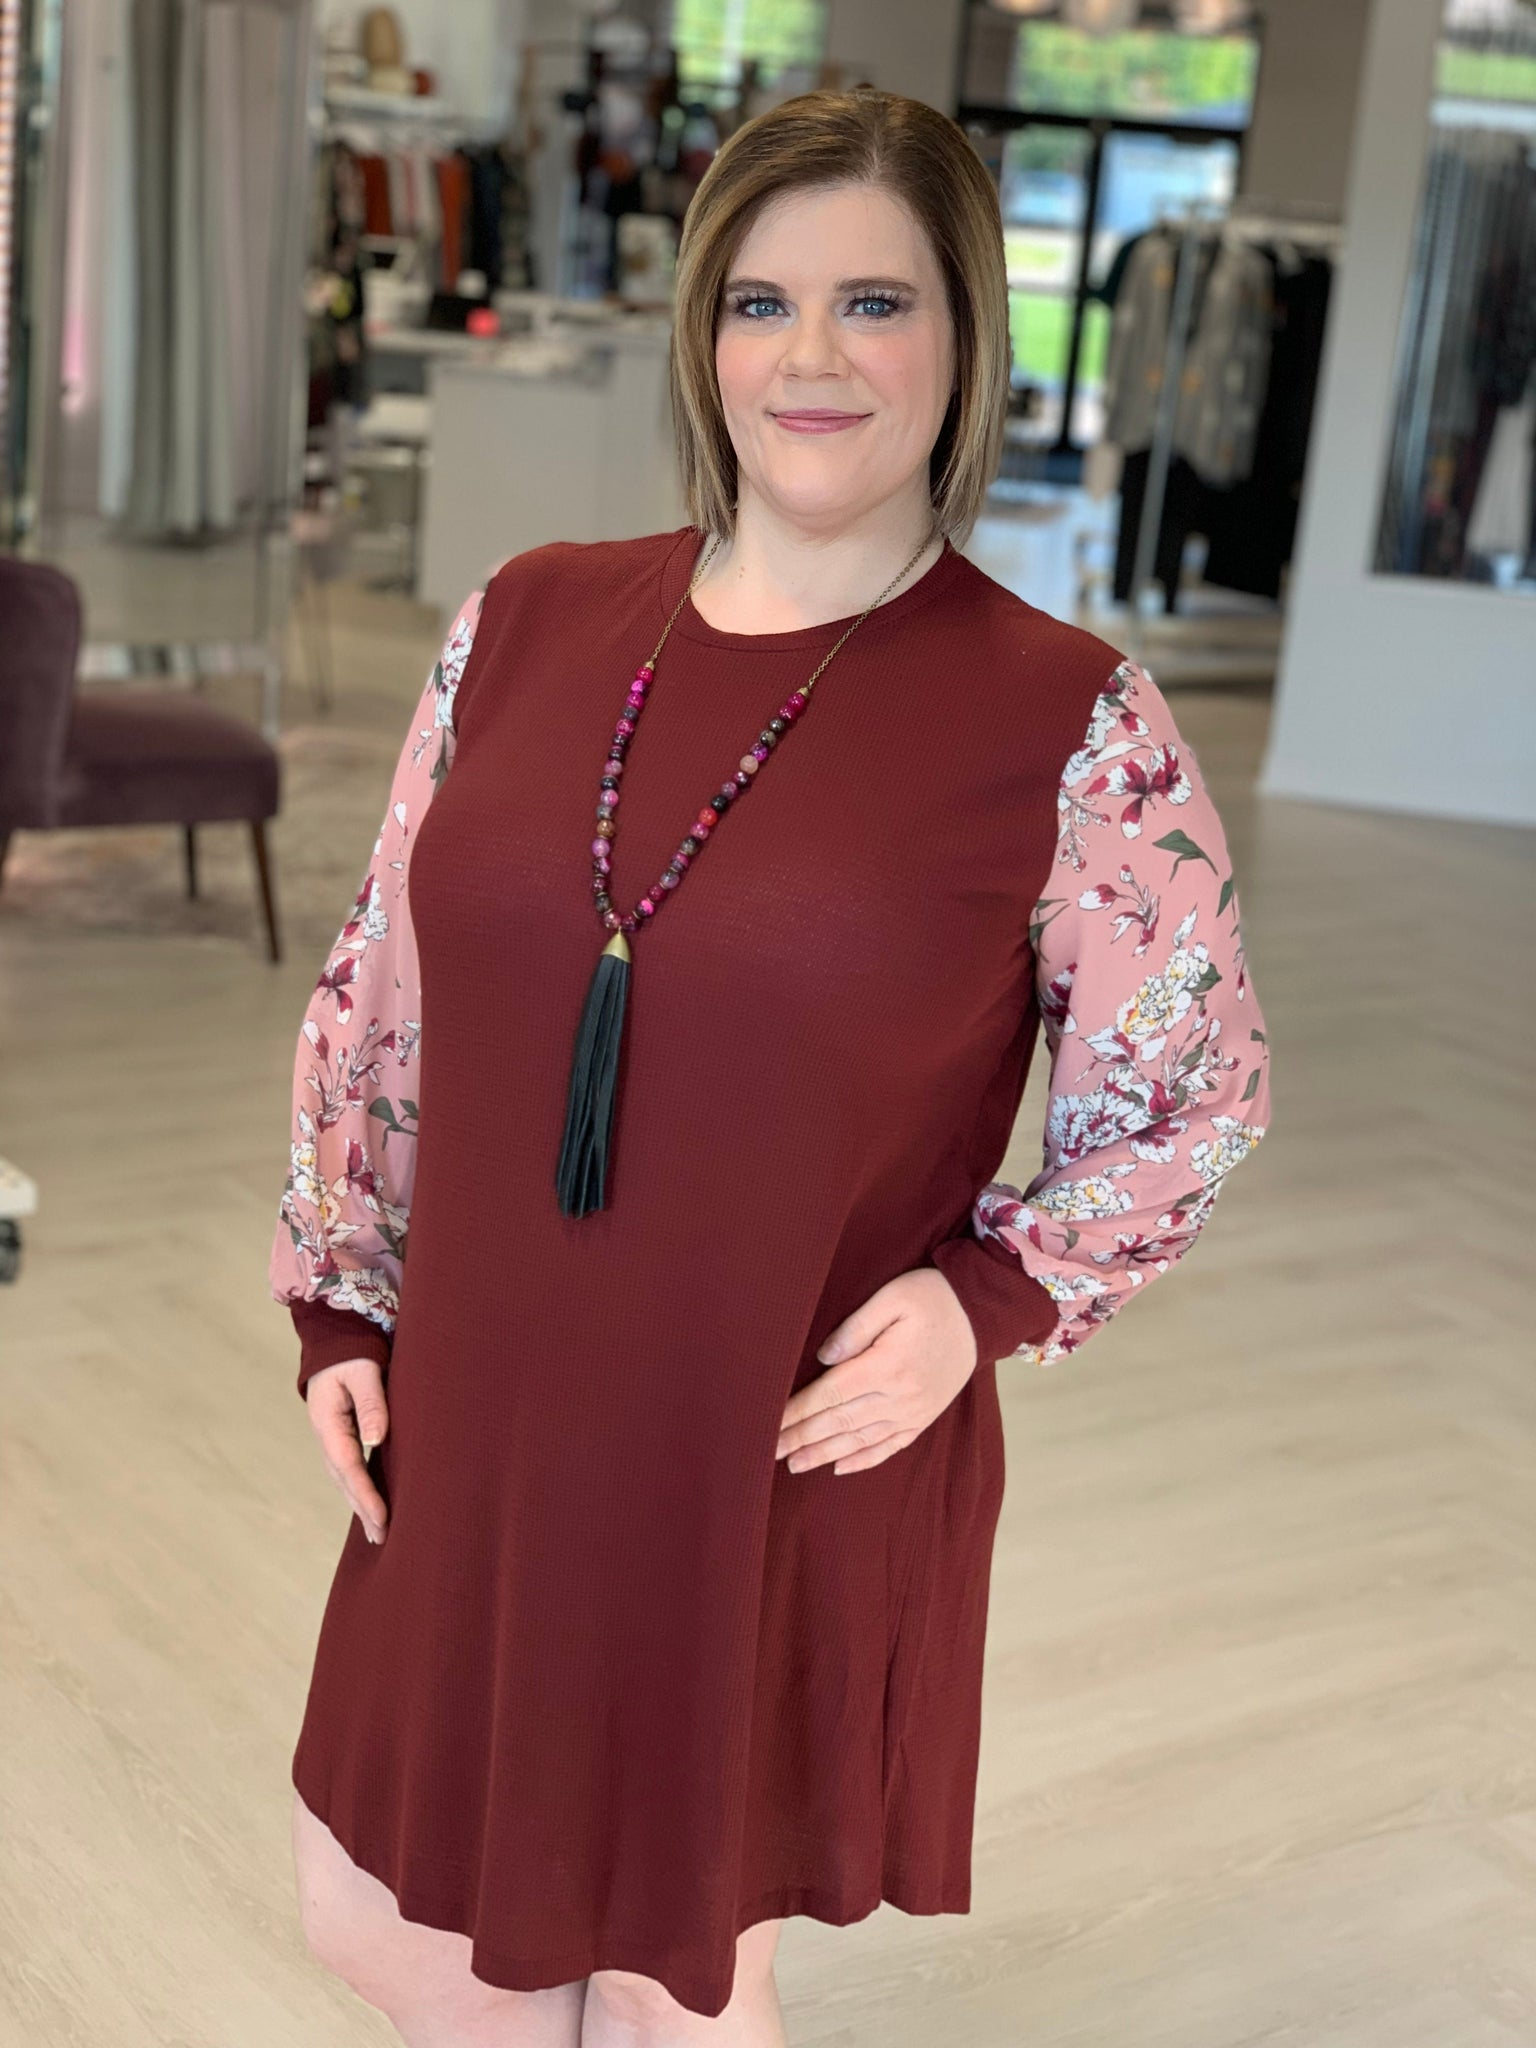 THERMAL SHIRTDRESS WITH FLORAL BLOUSON SLEEVES